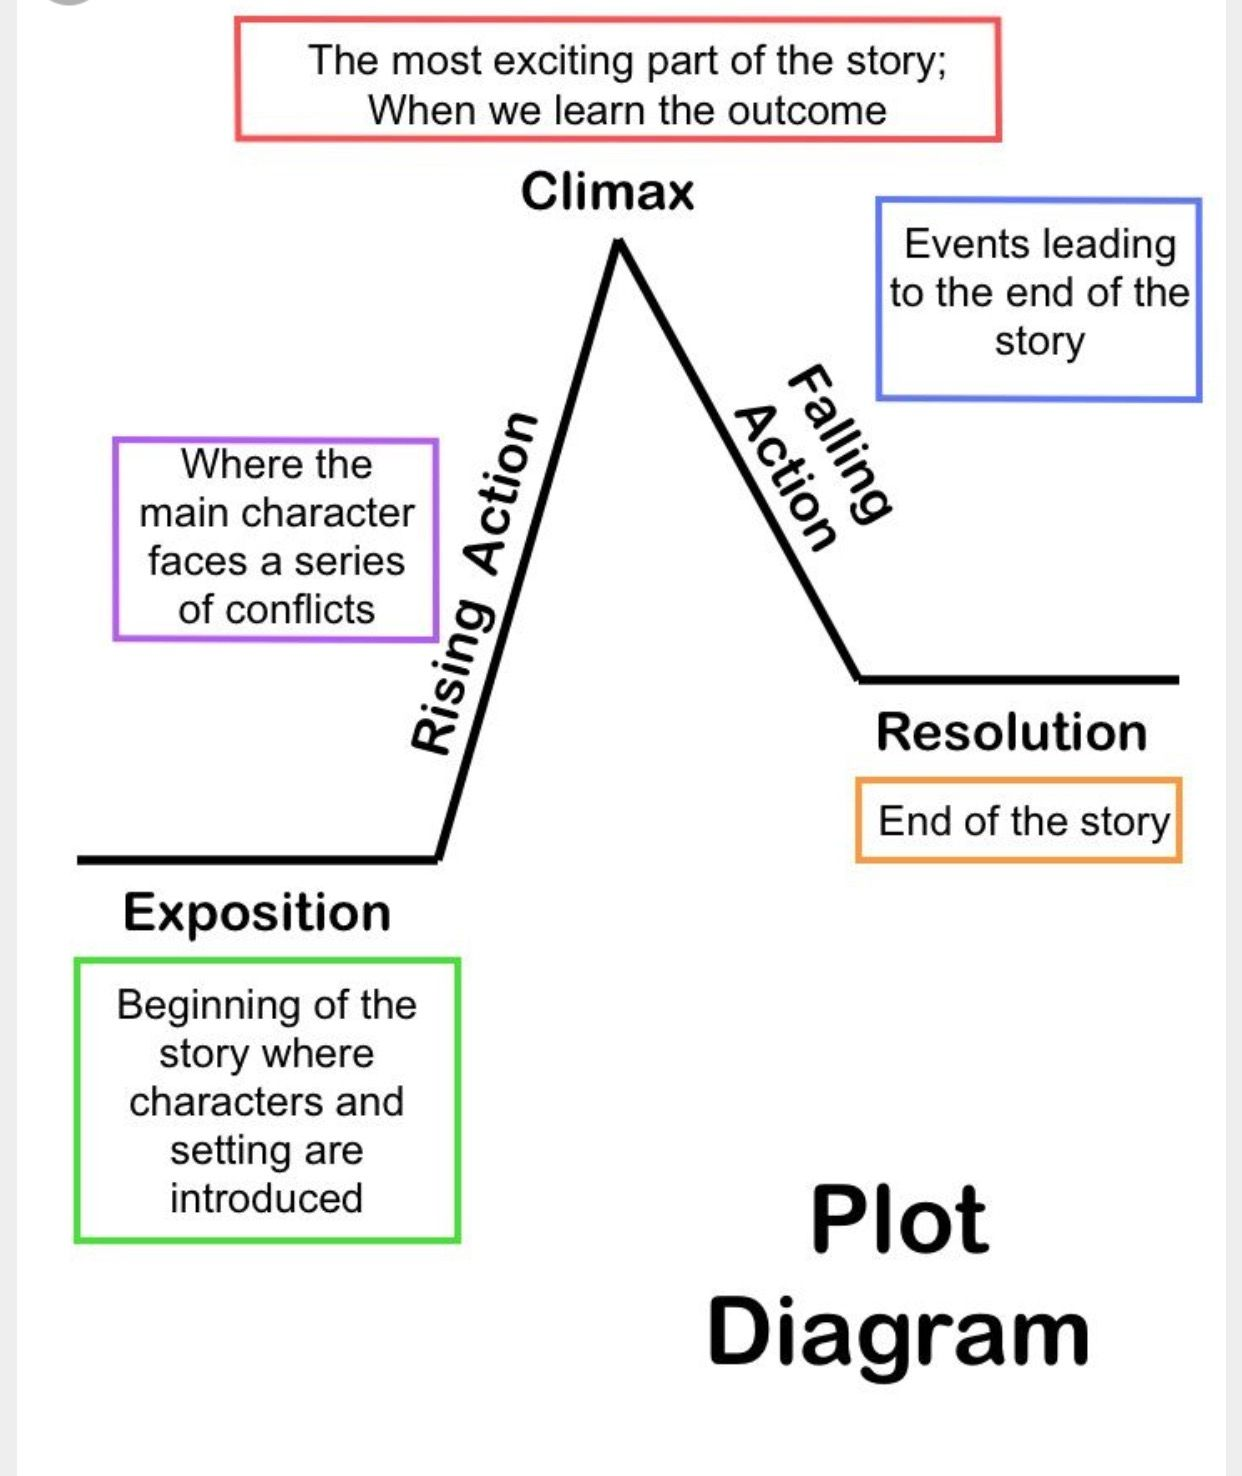 Pin by heidi apelt devincent on englishlanguage arts pinterest summarizing short stories story elements and conflicti use the diagram a lot for teaching plot structure this is a great breakdown of the chart pooptronica Gallery